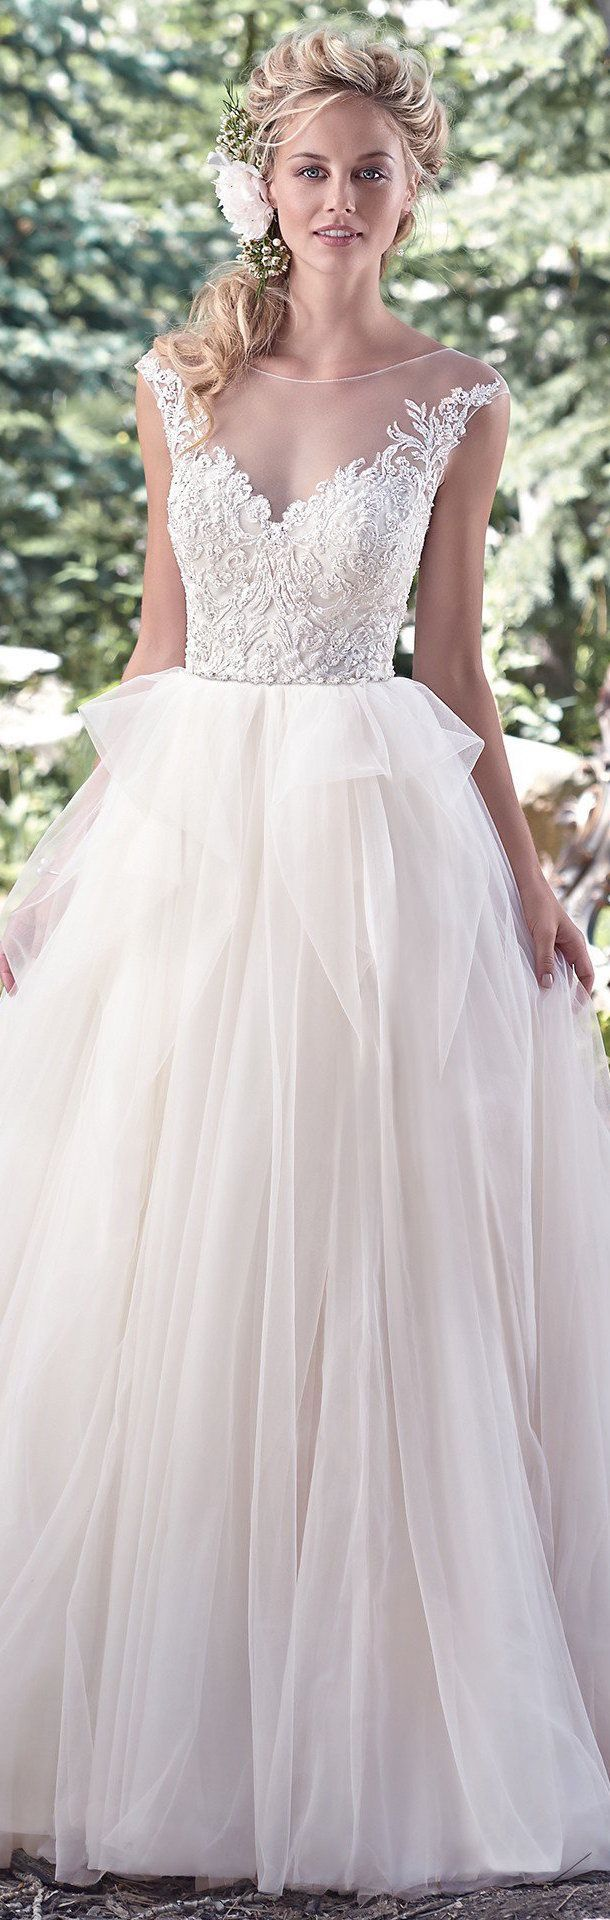 Dress Gallery | Wedding Dresses | Pinterest | Mariage, Robe and Belle